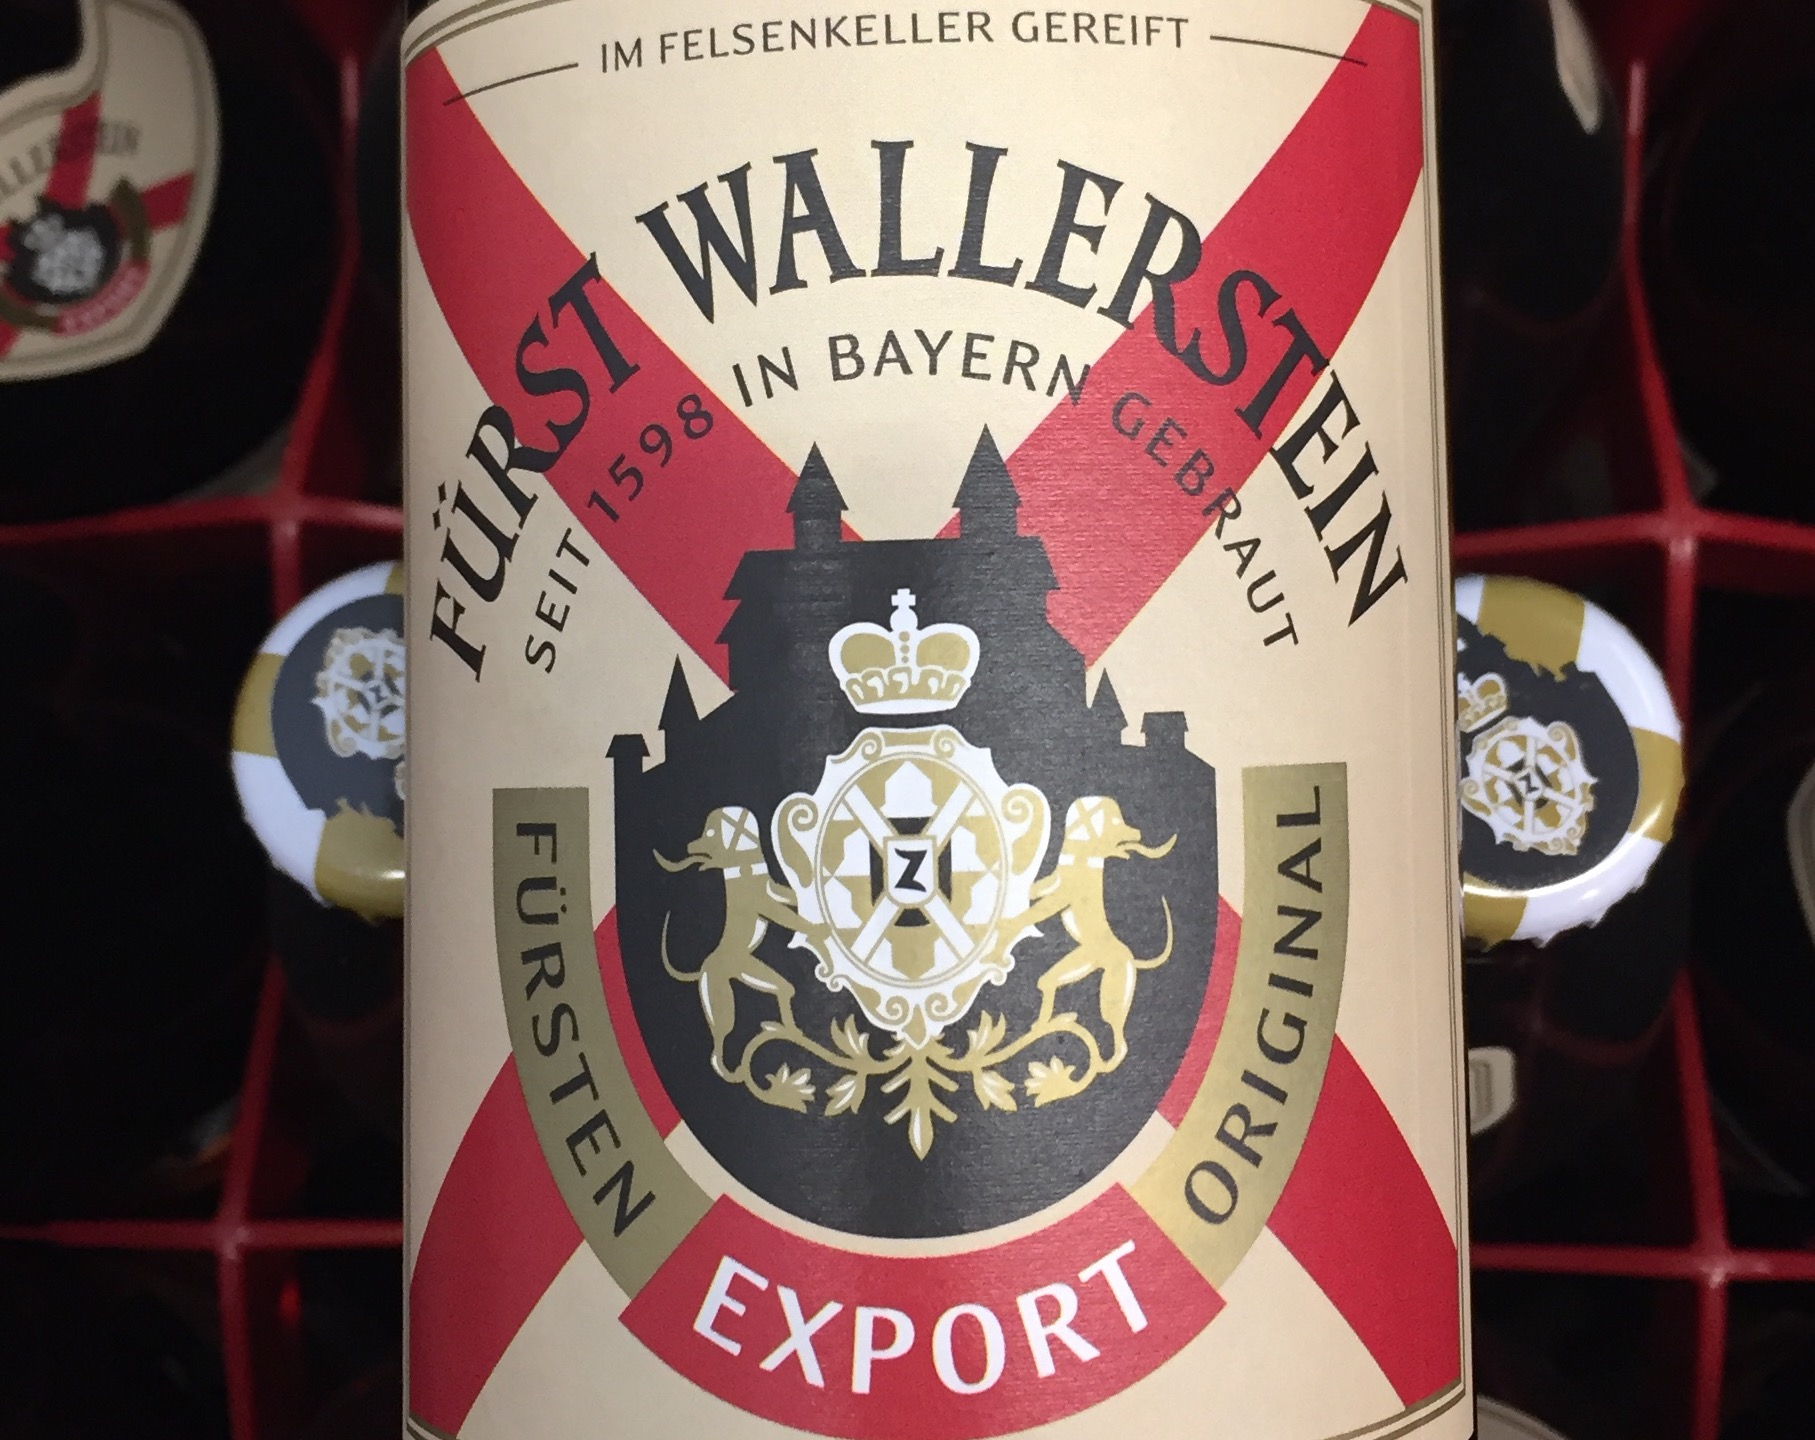 Fürst Wallenstein - Export